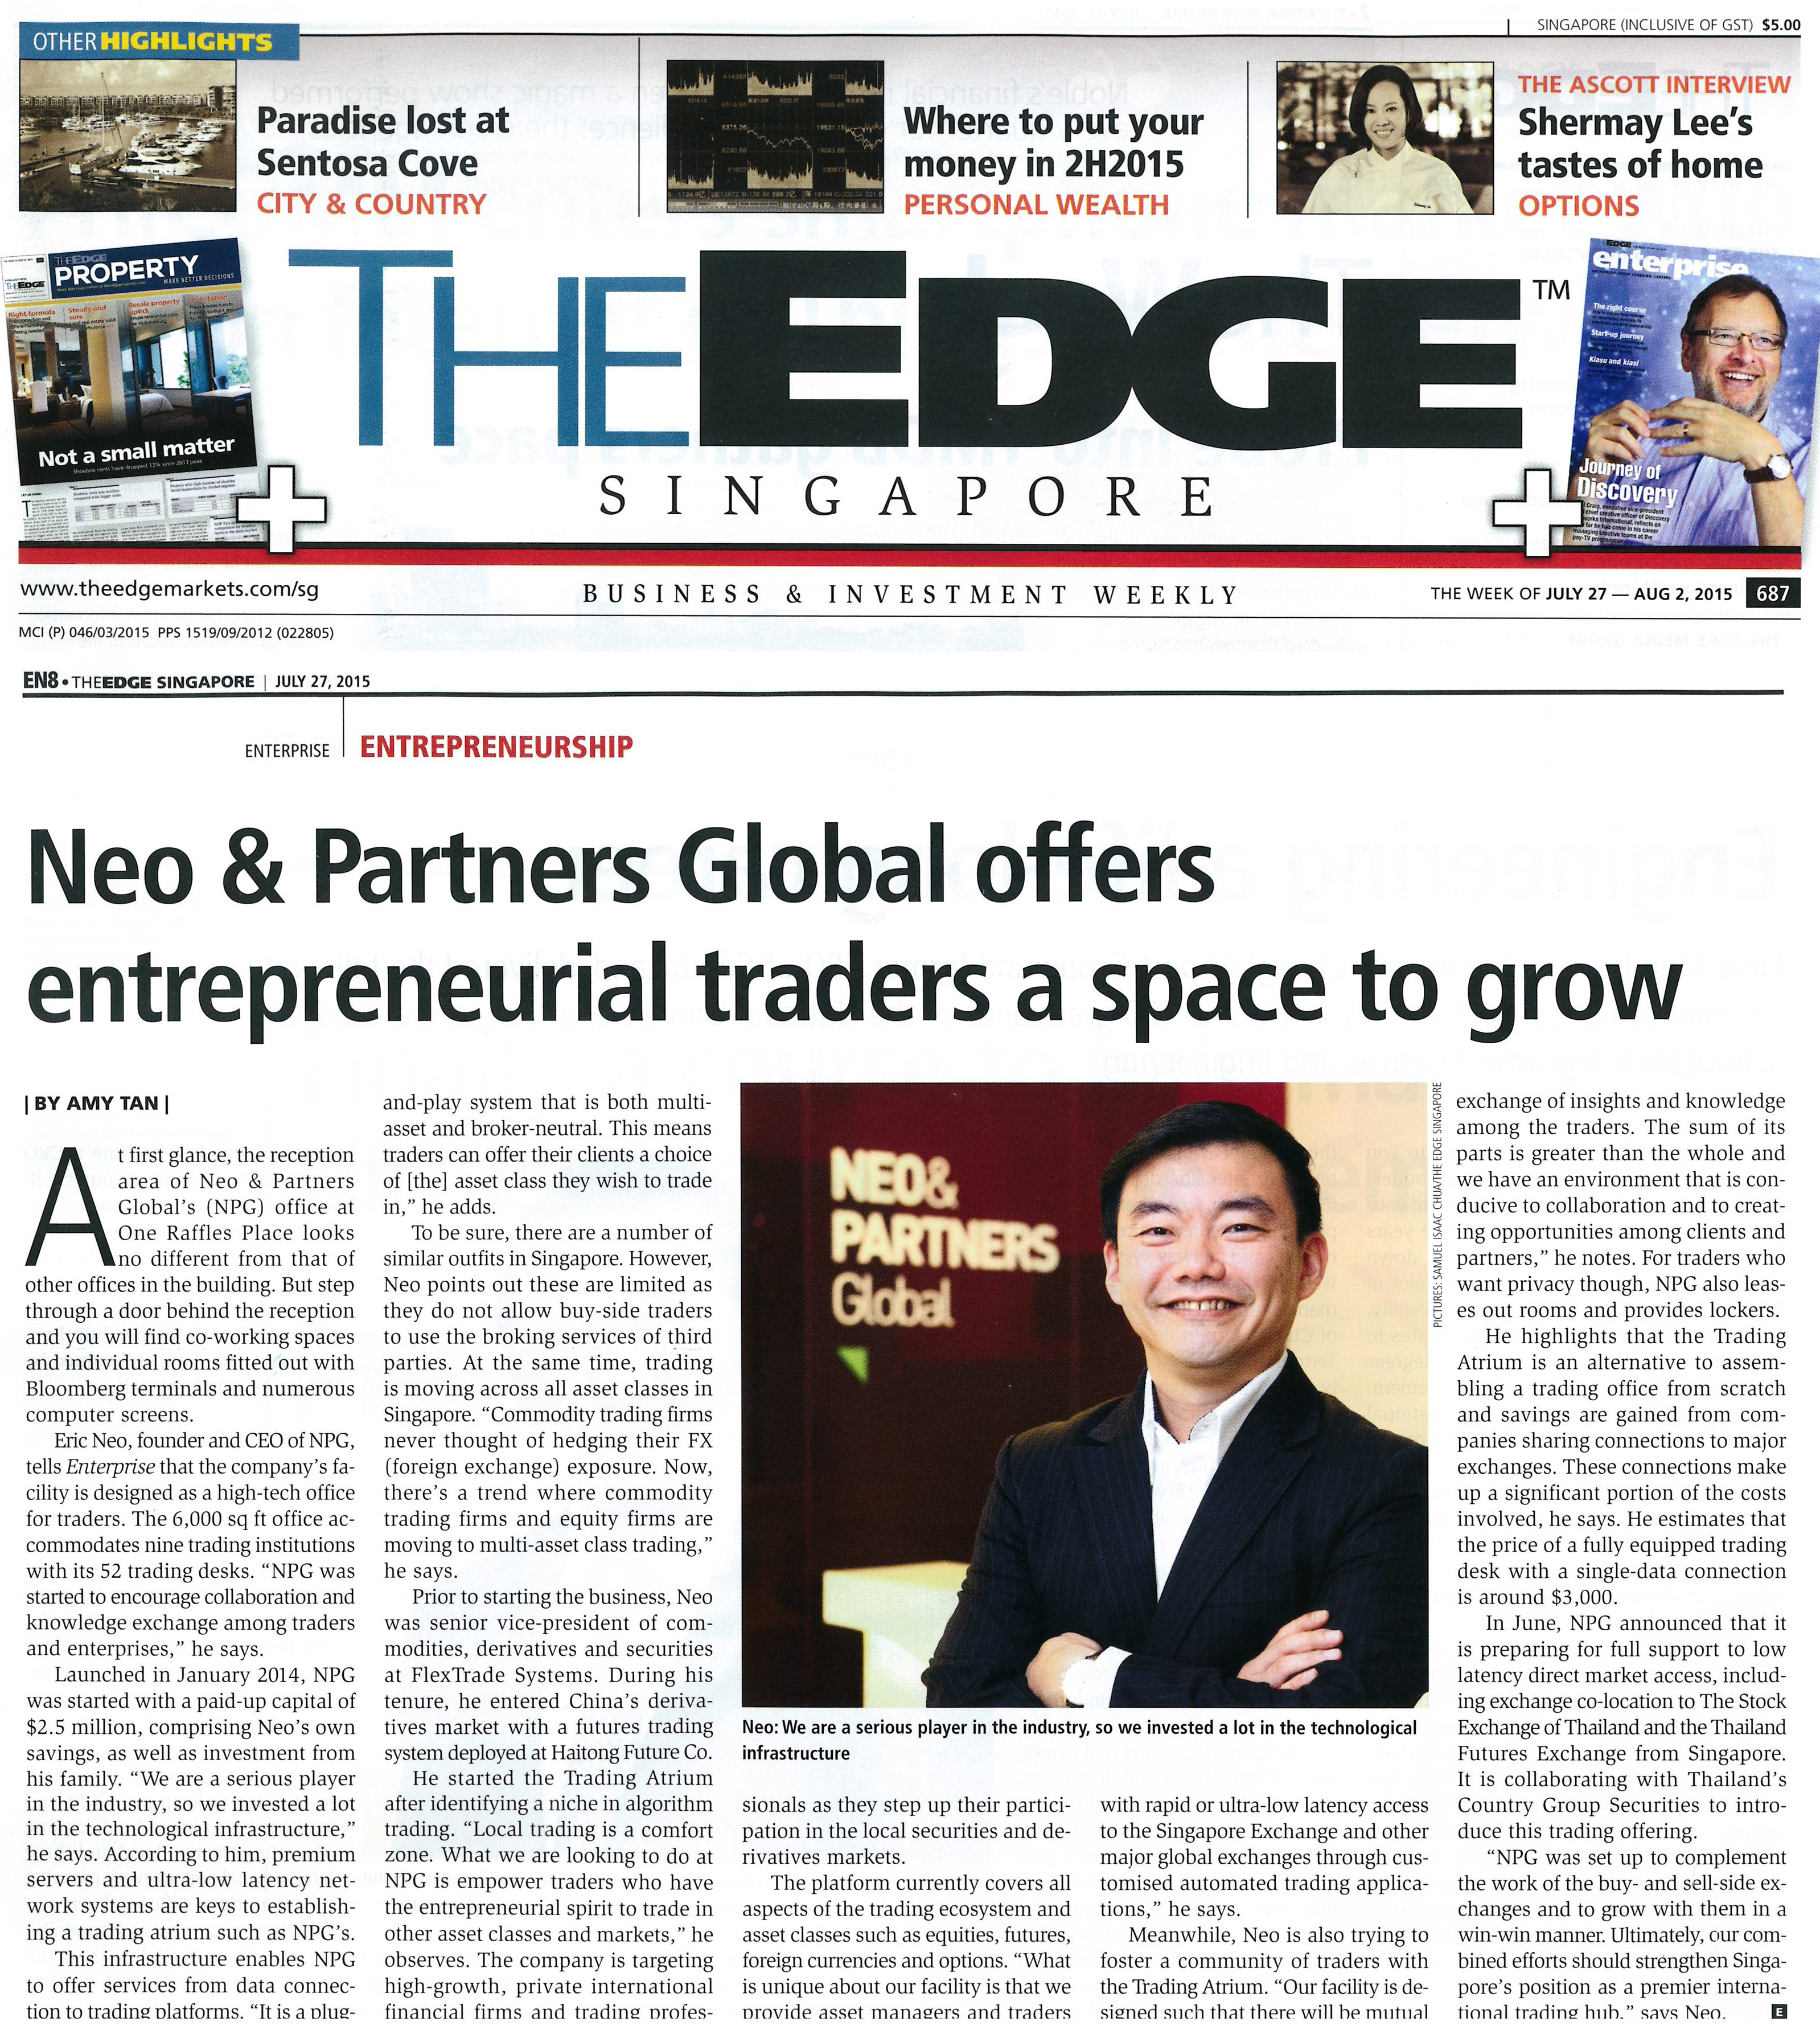 Neo & Partners Global Offers Entrepreneurial Traders A